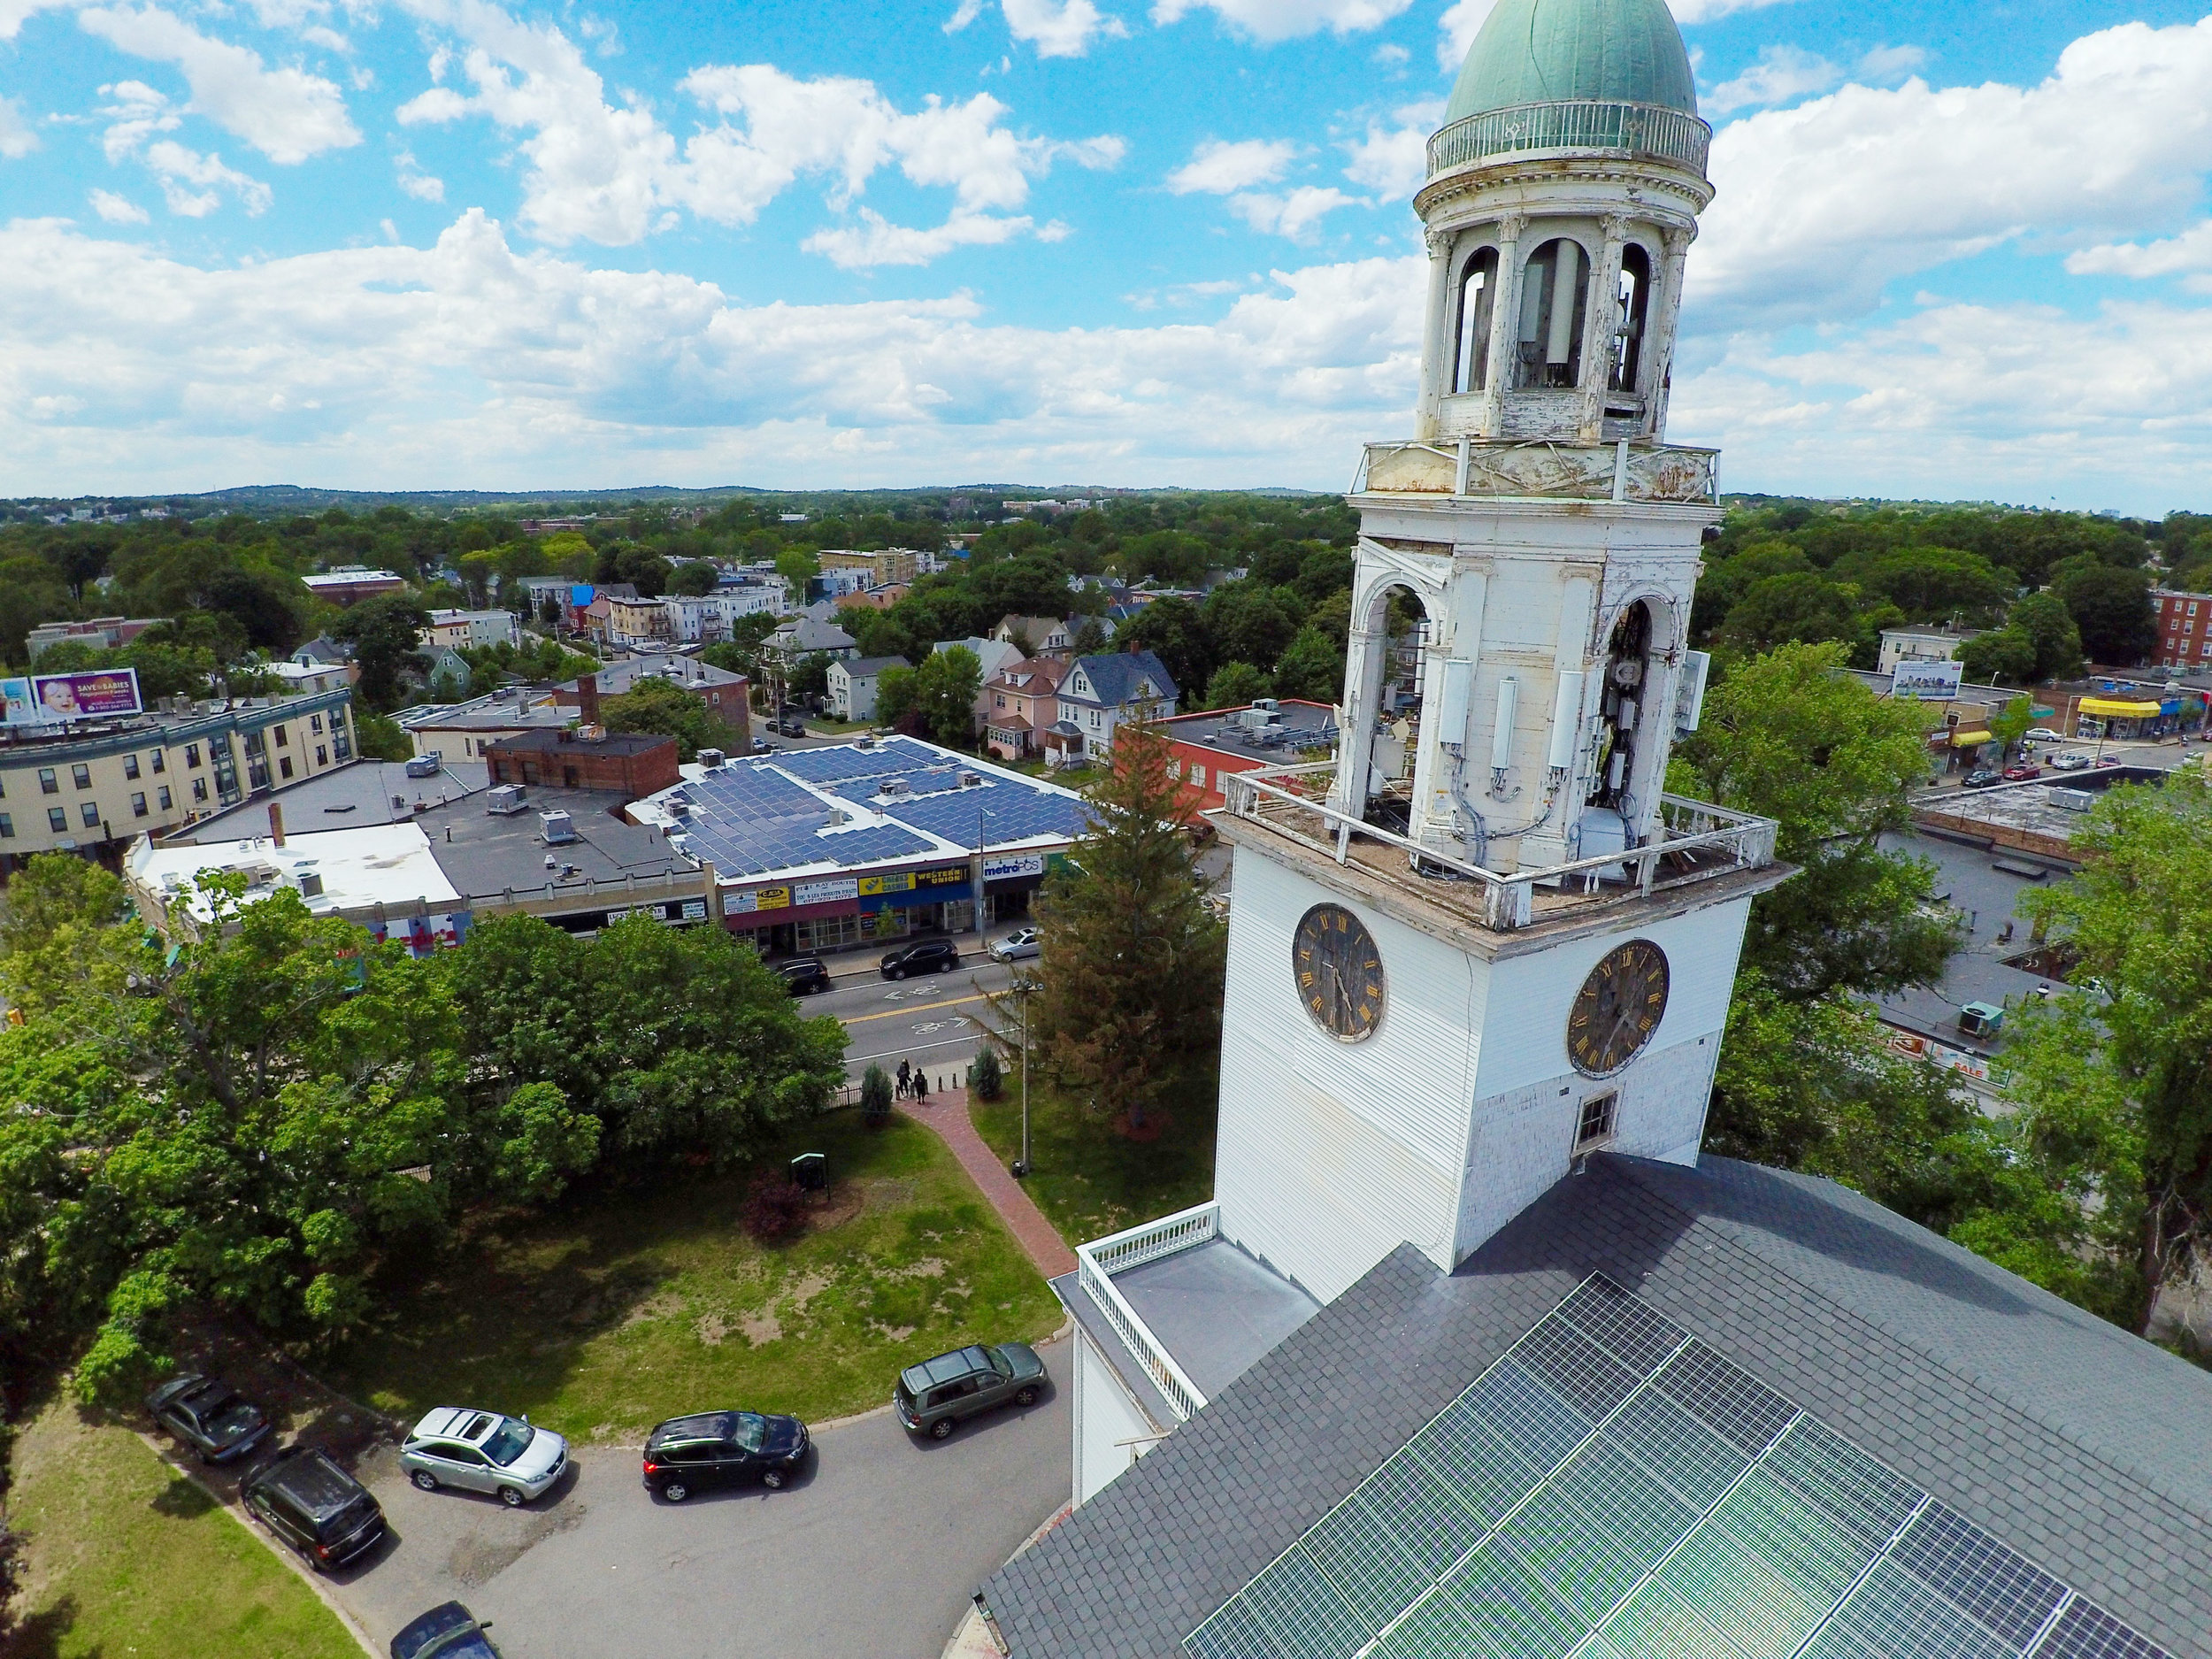 """Second Church in Dorchester   Through the Codman Square Goes Solar initiative, Second Church in Dorchester installed a 25-kilowatt system on the roof. """"It was an exciting time for us when we heard that we can have solar on our roof that provides a portion of the electricity for our building,"""" recalls Alphonse Knight, the property manager at Second Church. """"We are smiling to the bank for saving a lot of money. It's catching on in the neighborhood… Solar is here to stay and we want to work with it."""" The project provides a means for Second Church to lead by example and be a steward in faith and environmental leadership. In 2017, Mayor Walsh awarded the 211-year-old building the  Buildings and Energy Greenovate award ."""